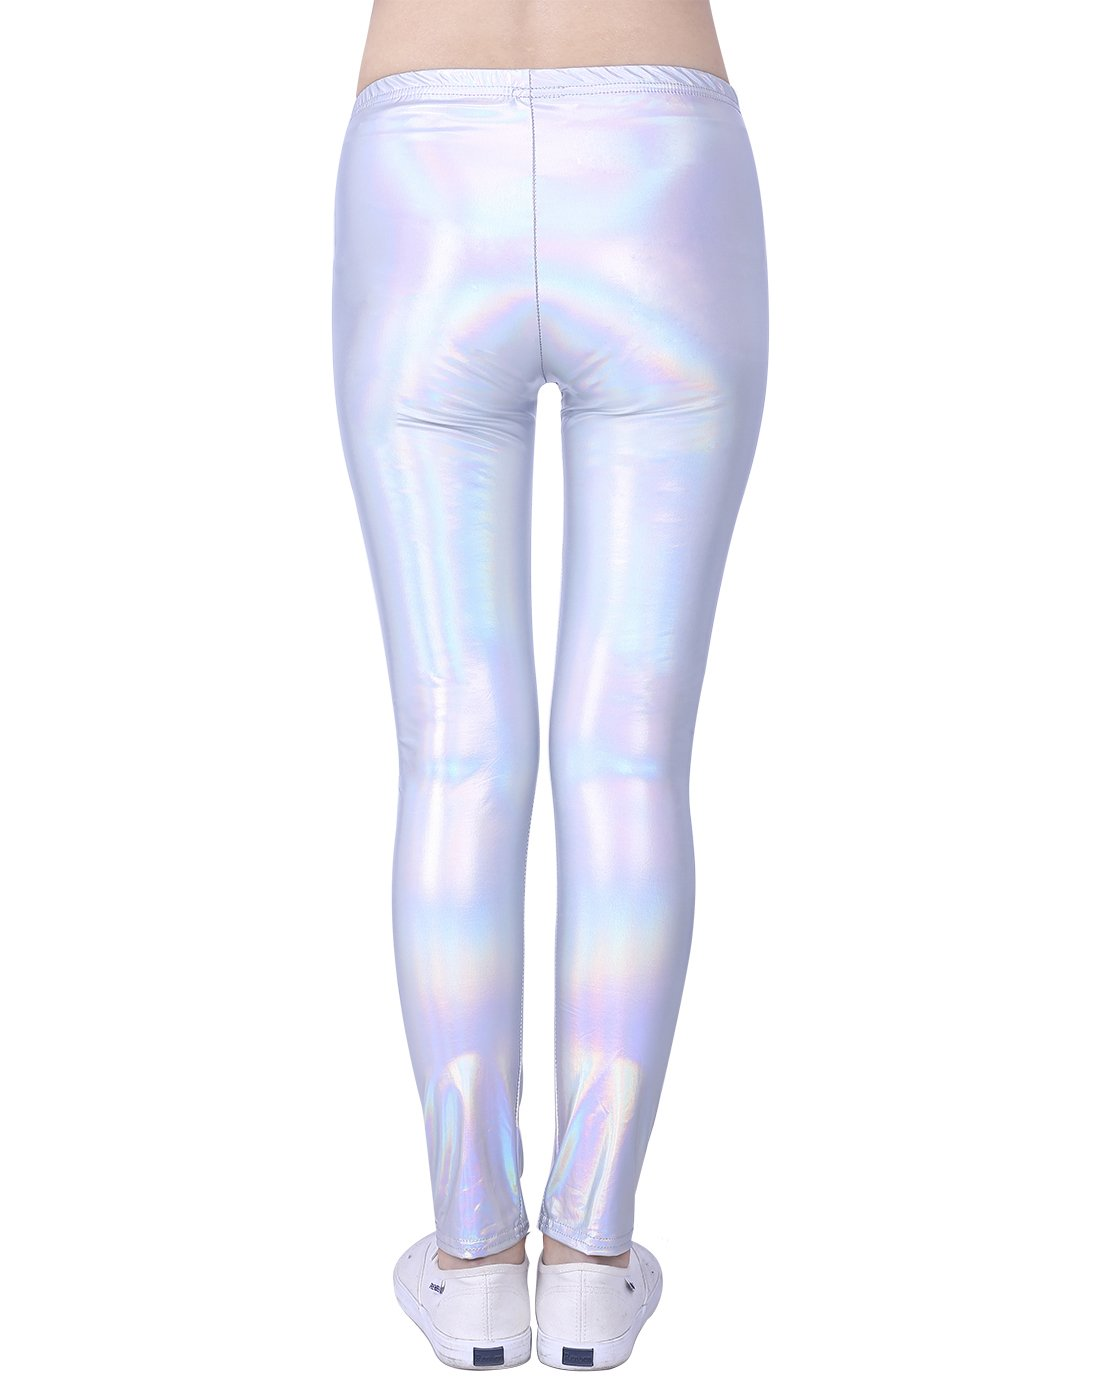 47a5428e98189 HDE Girls Shiny Wet Look Leggings Kids Liquid Metallic Footless Tights  (4T-12) larger image